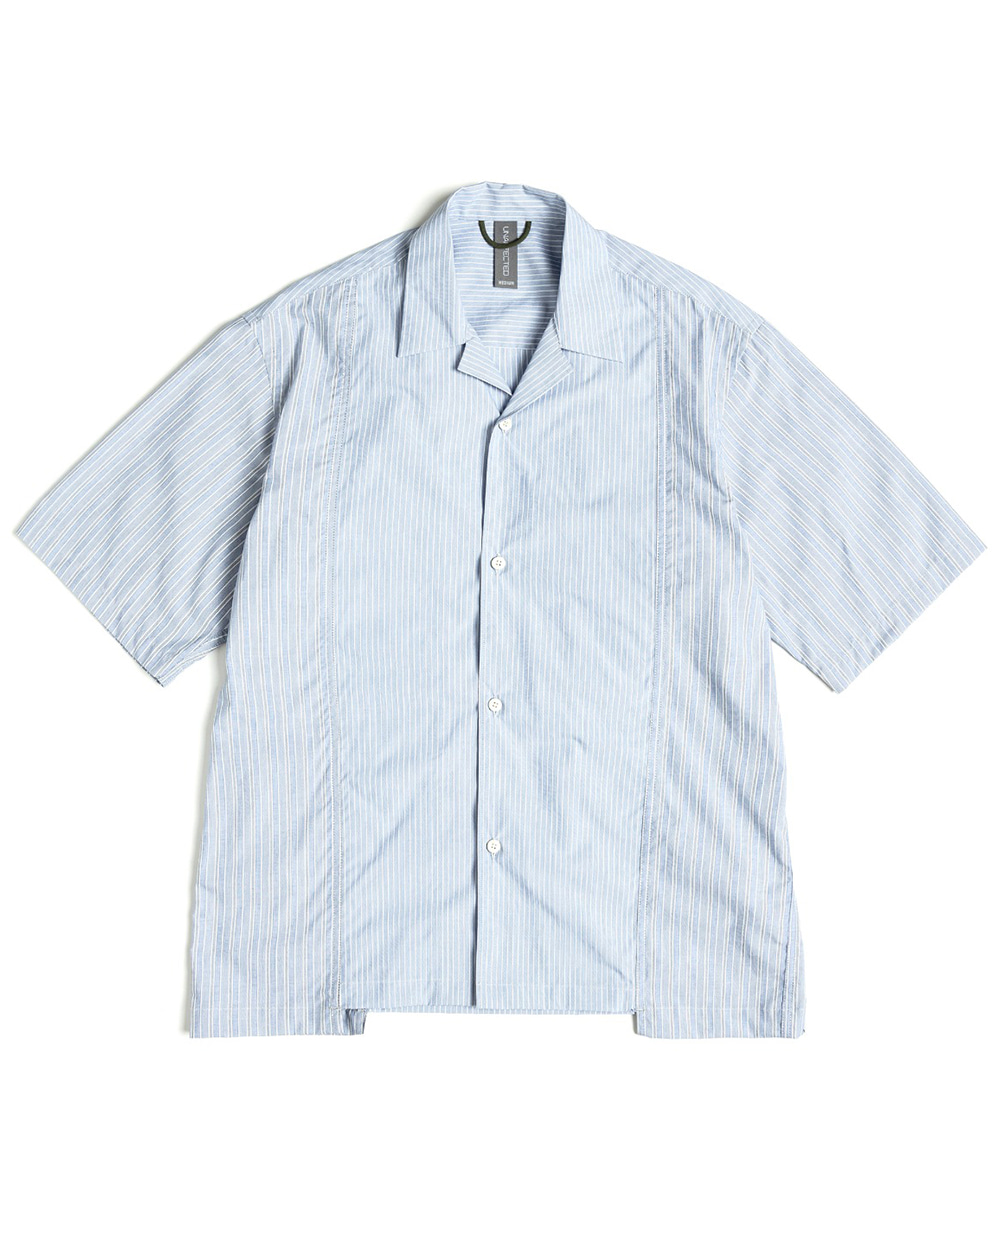 언어펙티드 CONTRAST PANEL HALF SHIRT (Blue stripe)